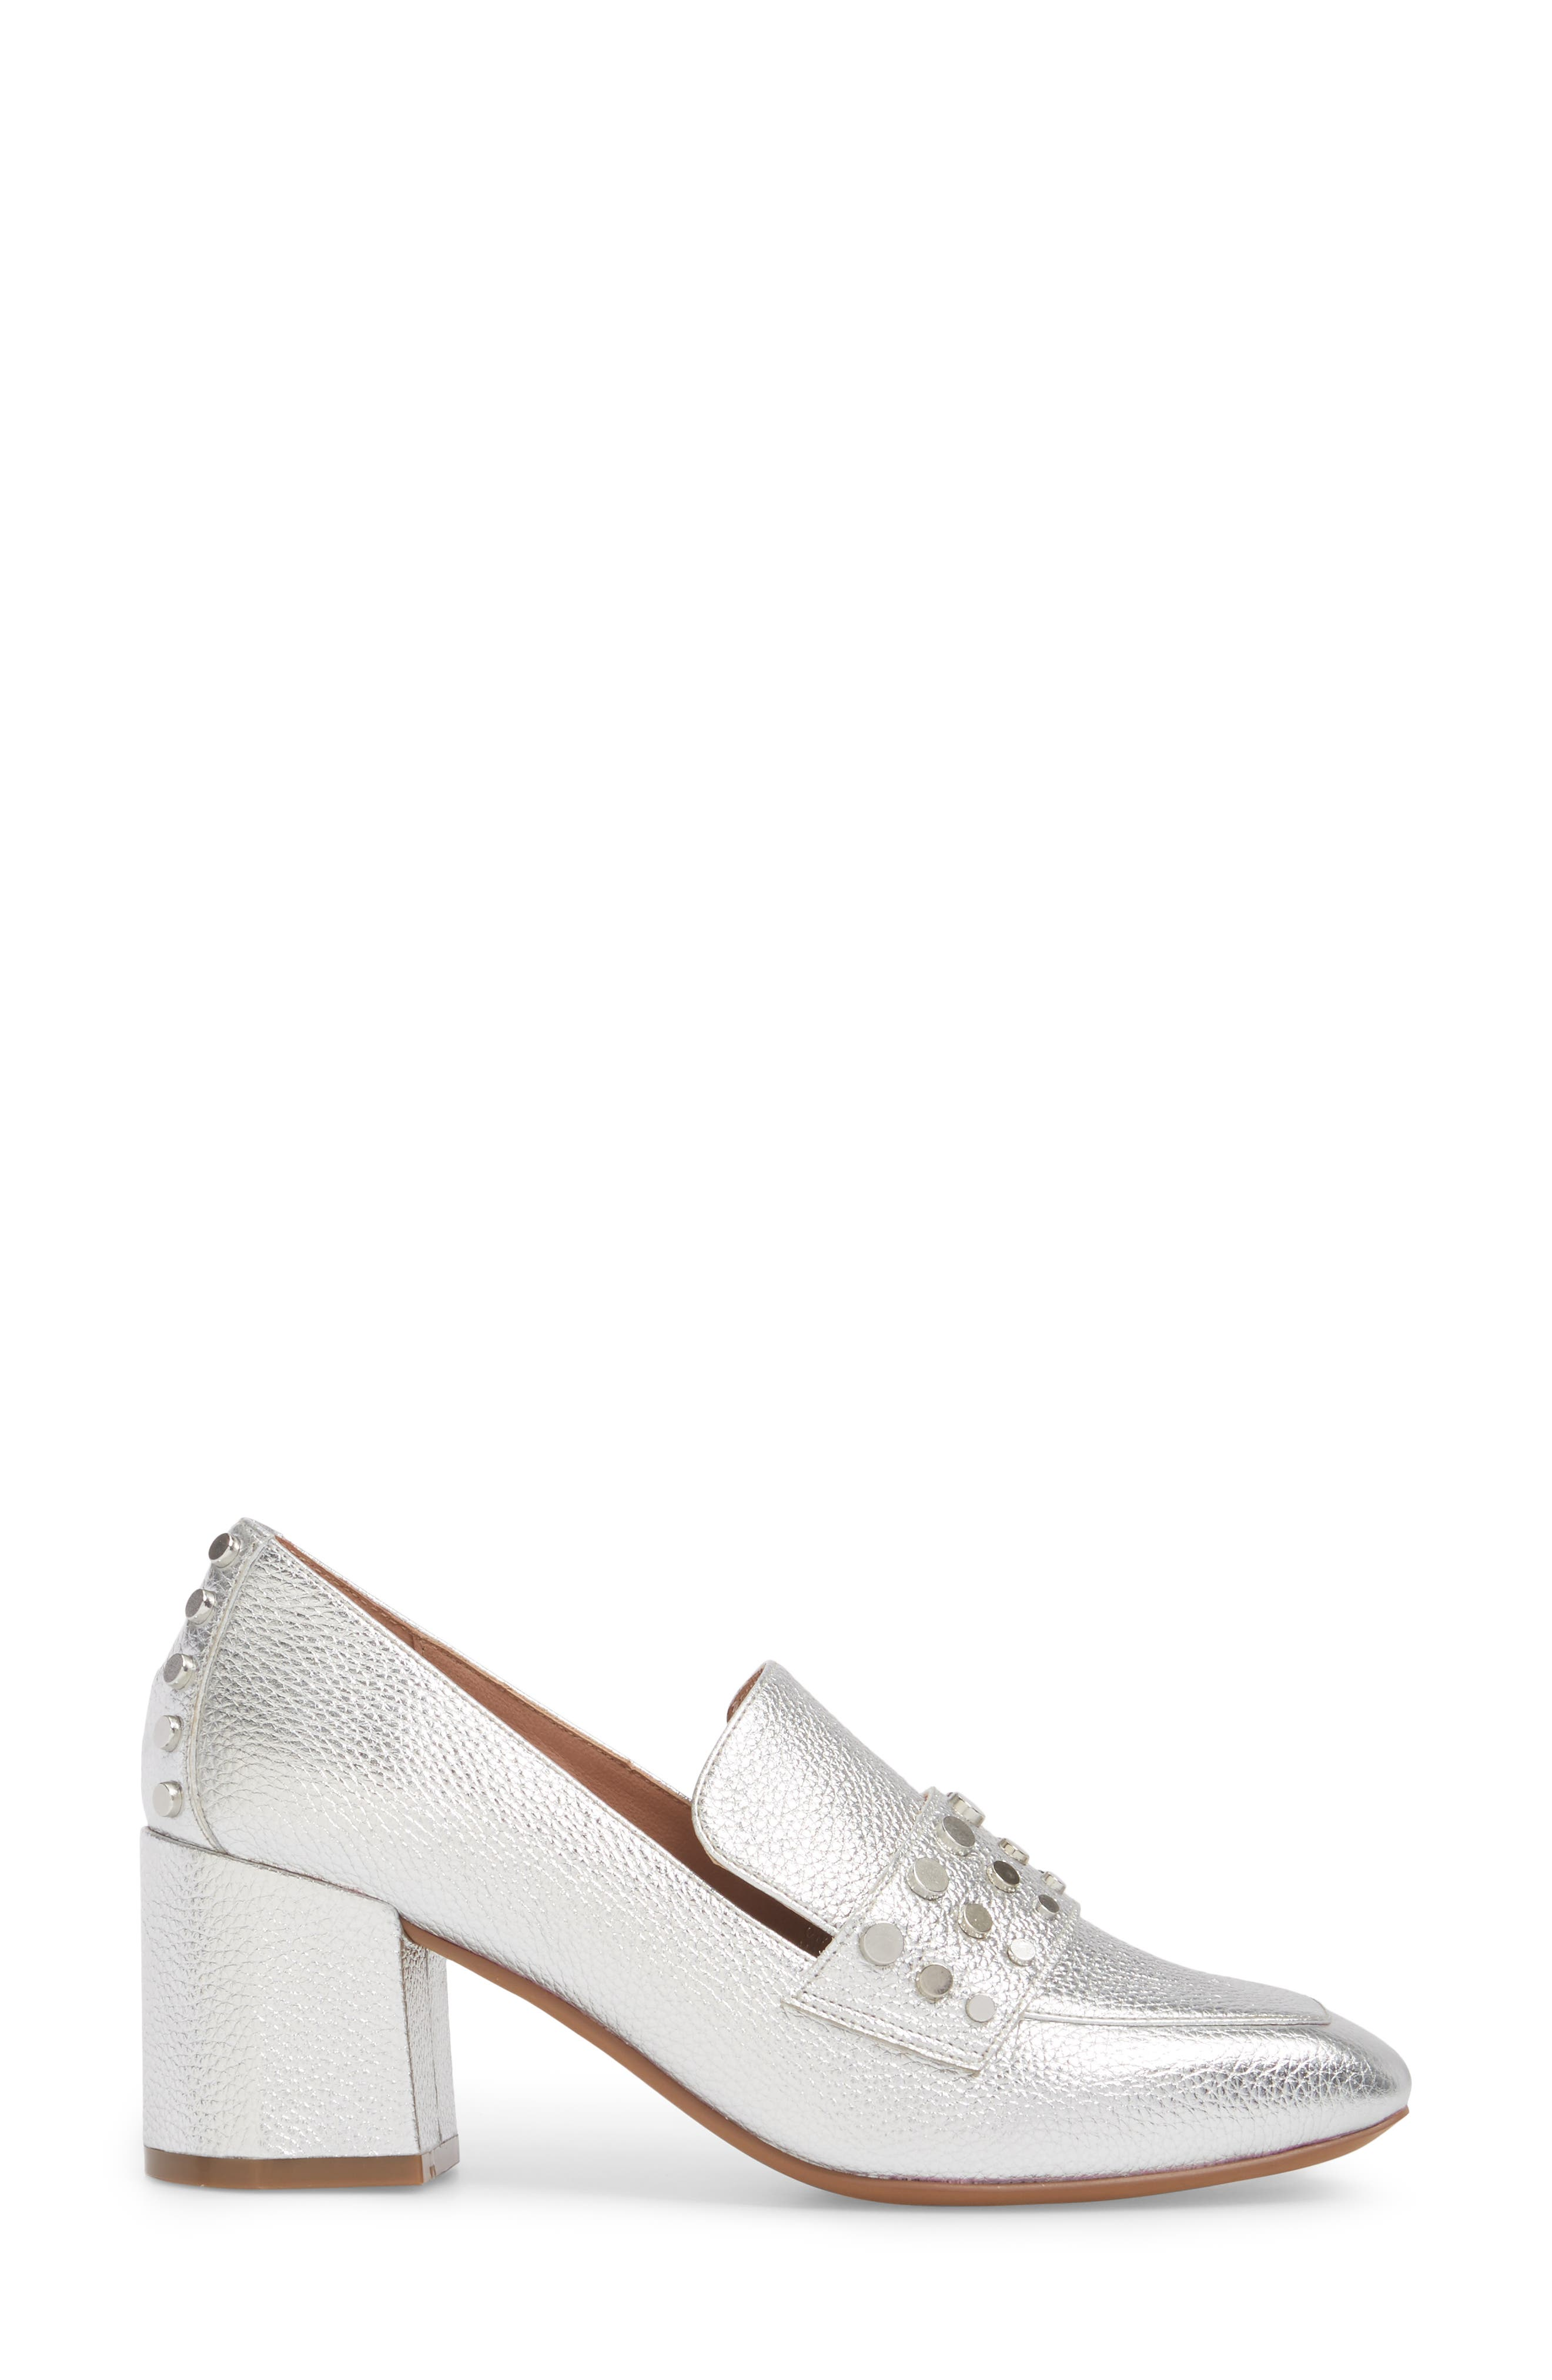 Luca Studded Pump,                             Alternate thumbnail 3, color,                             Silver Leather